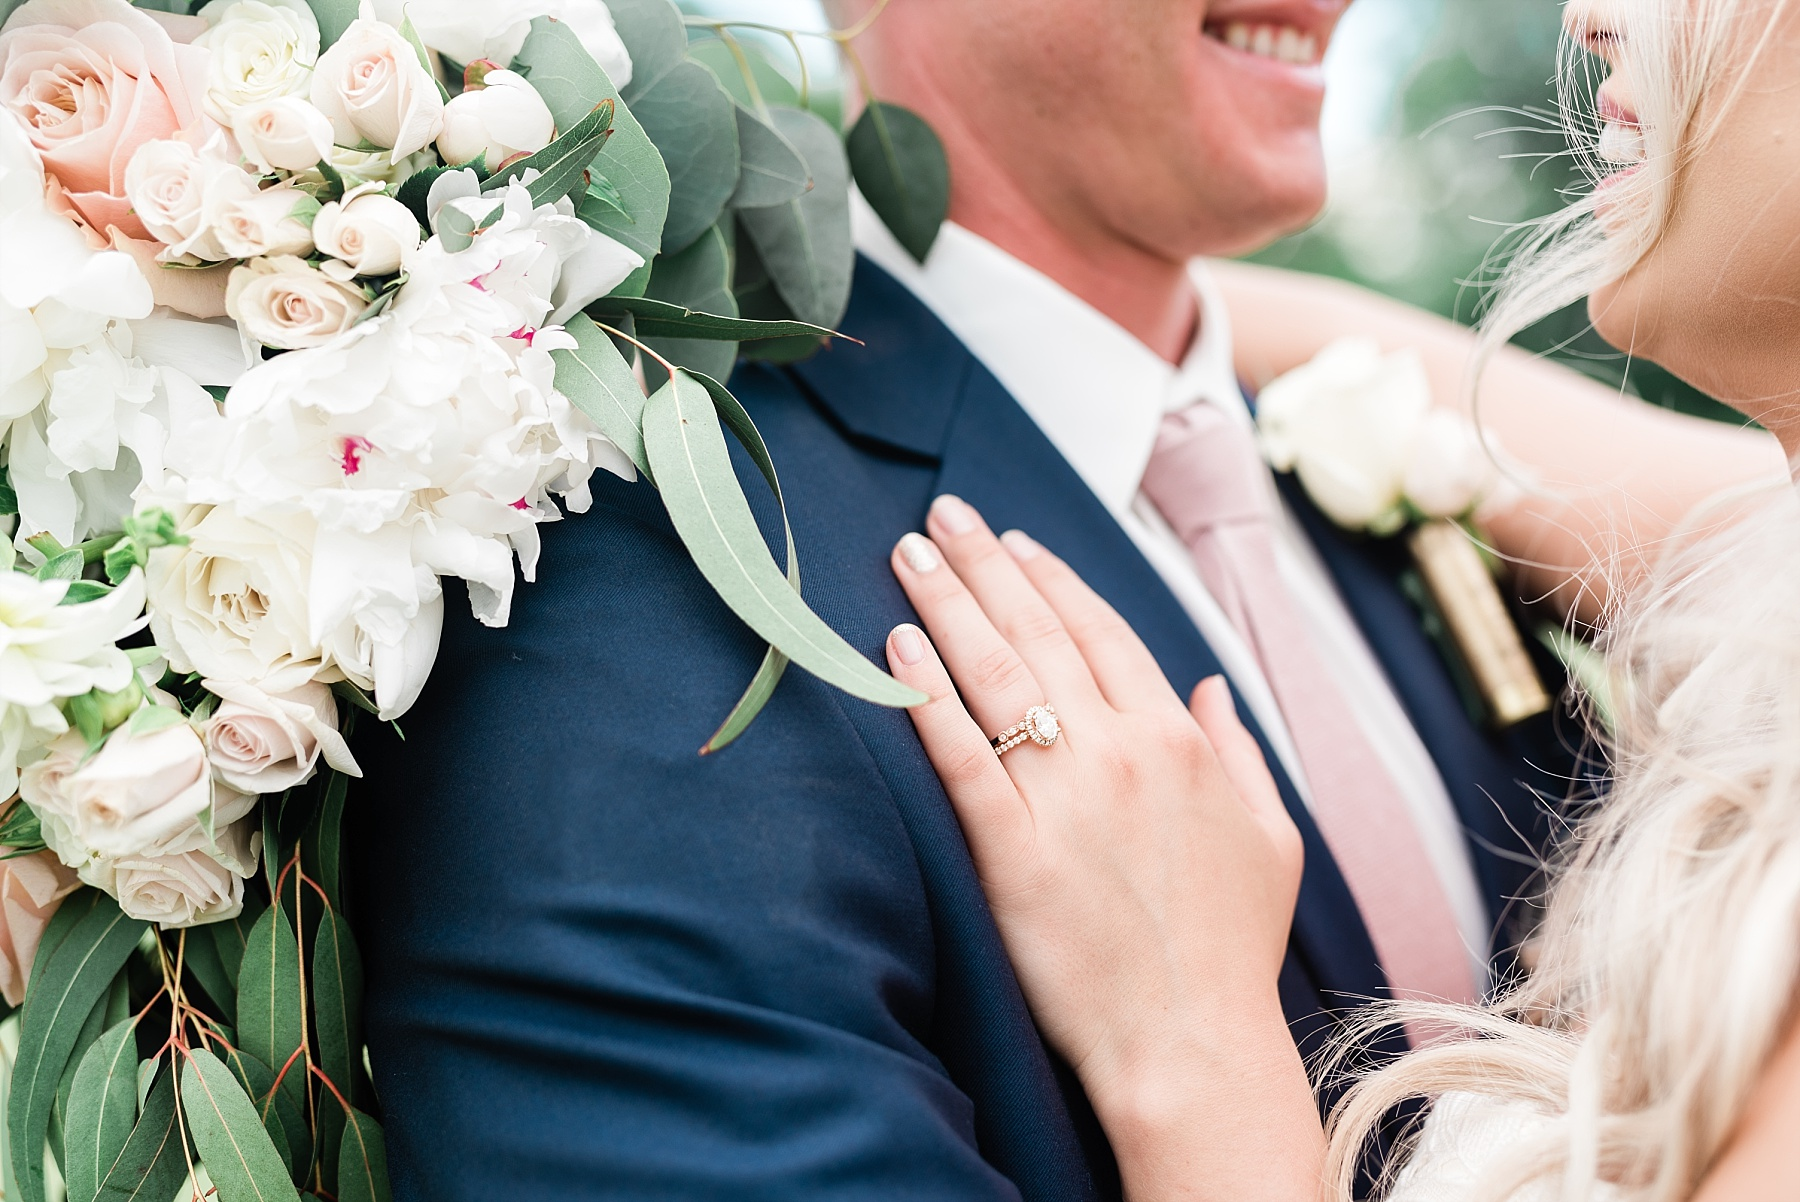 Stunning Heartfelt, Elegant, Fine Art, Chic, Outdoor Spring Wedding with Blush, Cream, Greenery, Rose Gold, and Sequins at Emerson Fields Venue by Kelsi Kliethermes Photography_0057.jpg